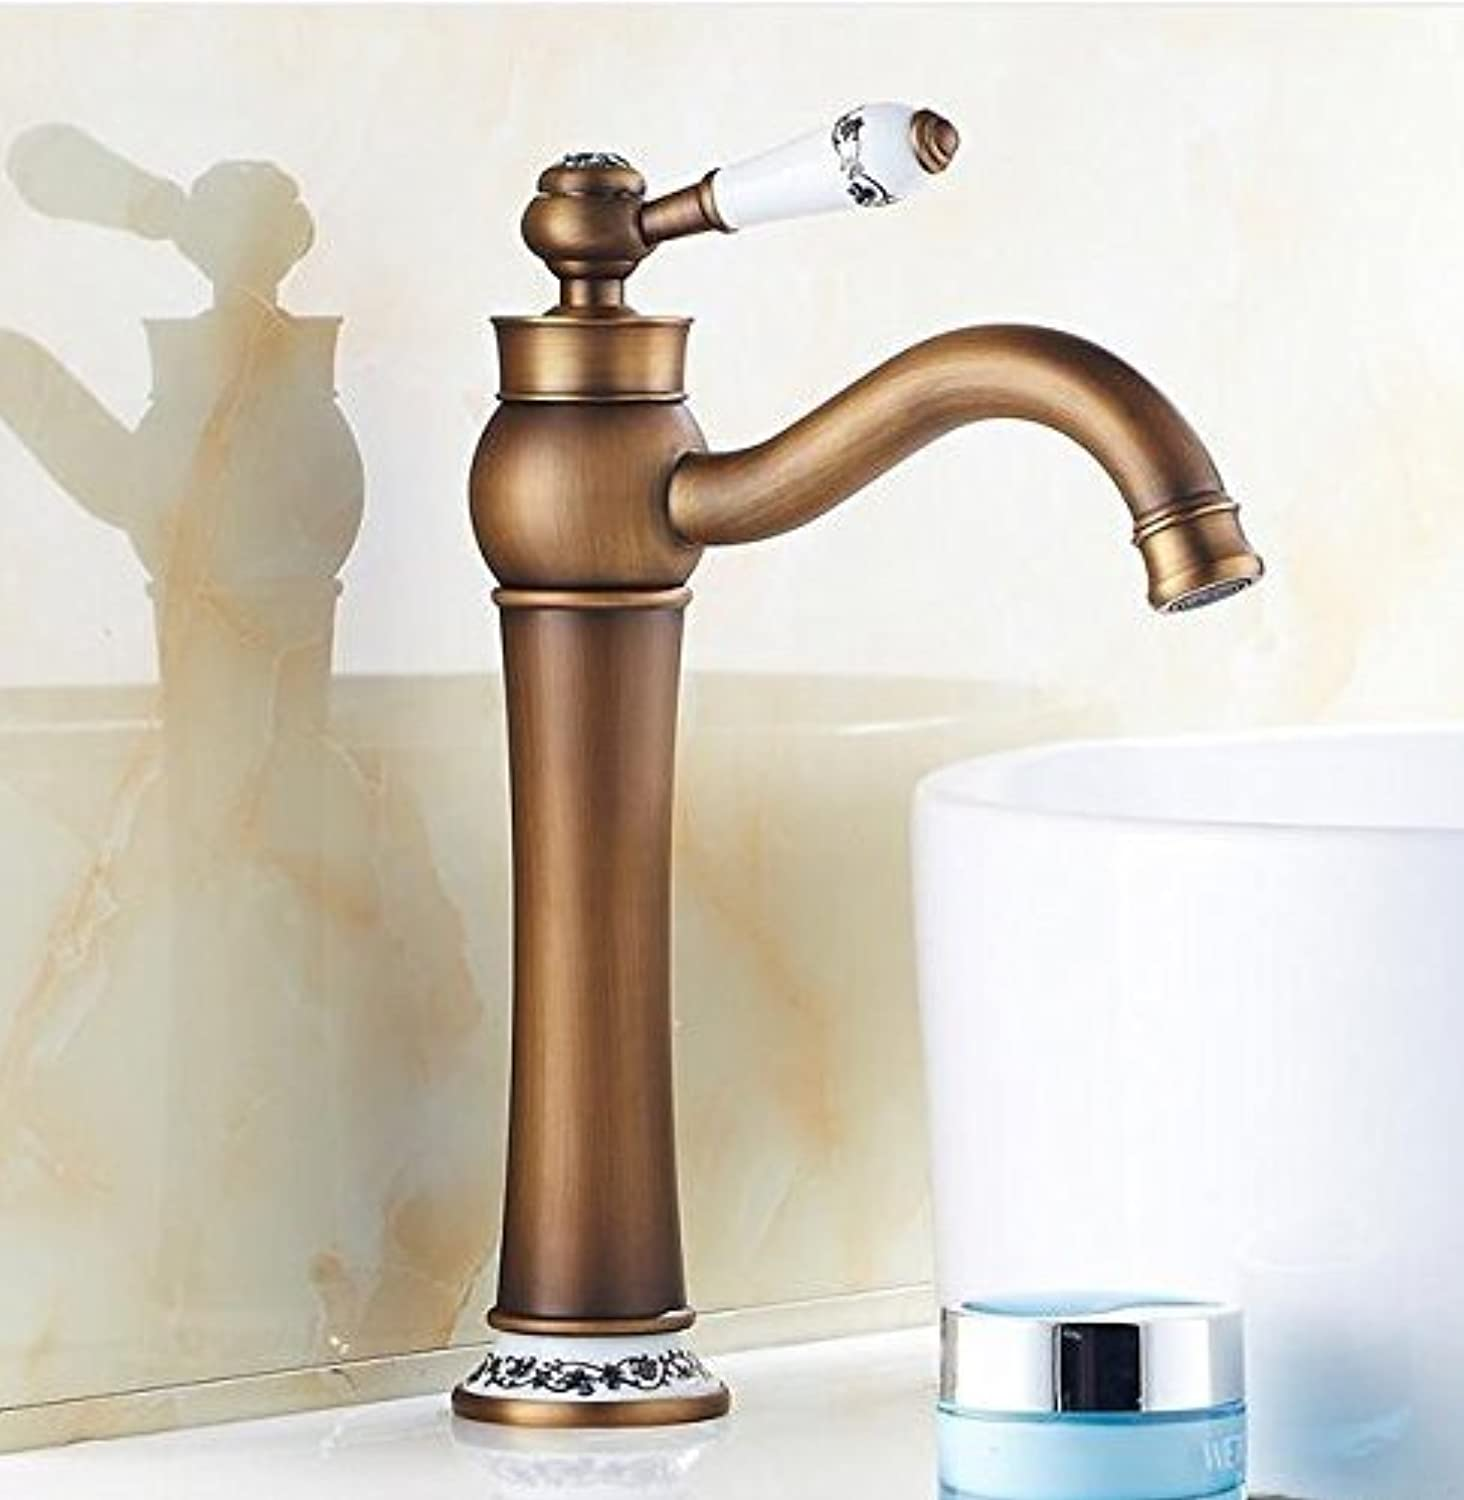 Diongrdk Basin Faucet Brass Antique Kitchen Faucet Bathroom Basin Faucet bluee and White Porcelain Deck Mounted Tap